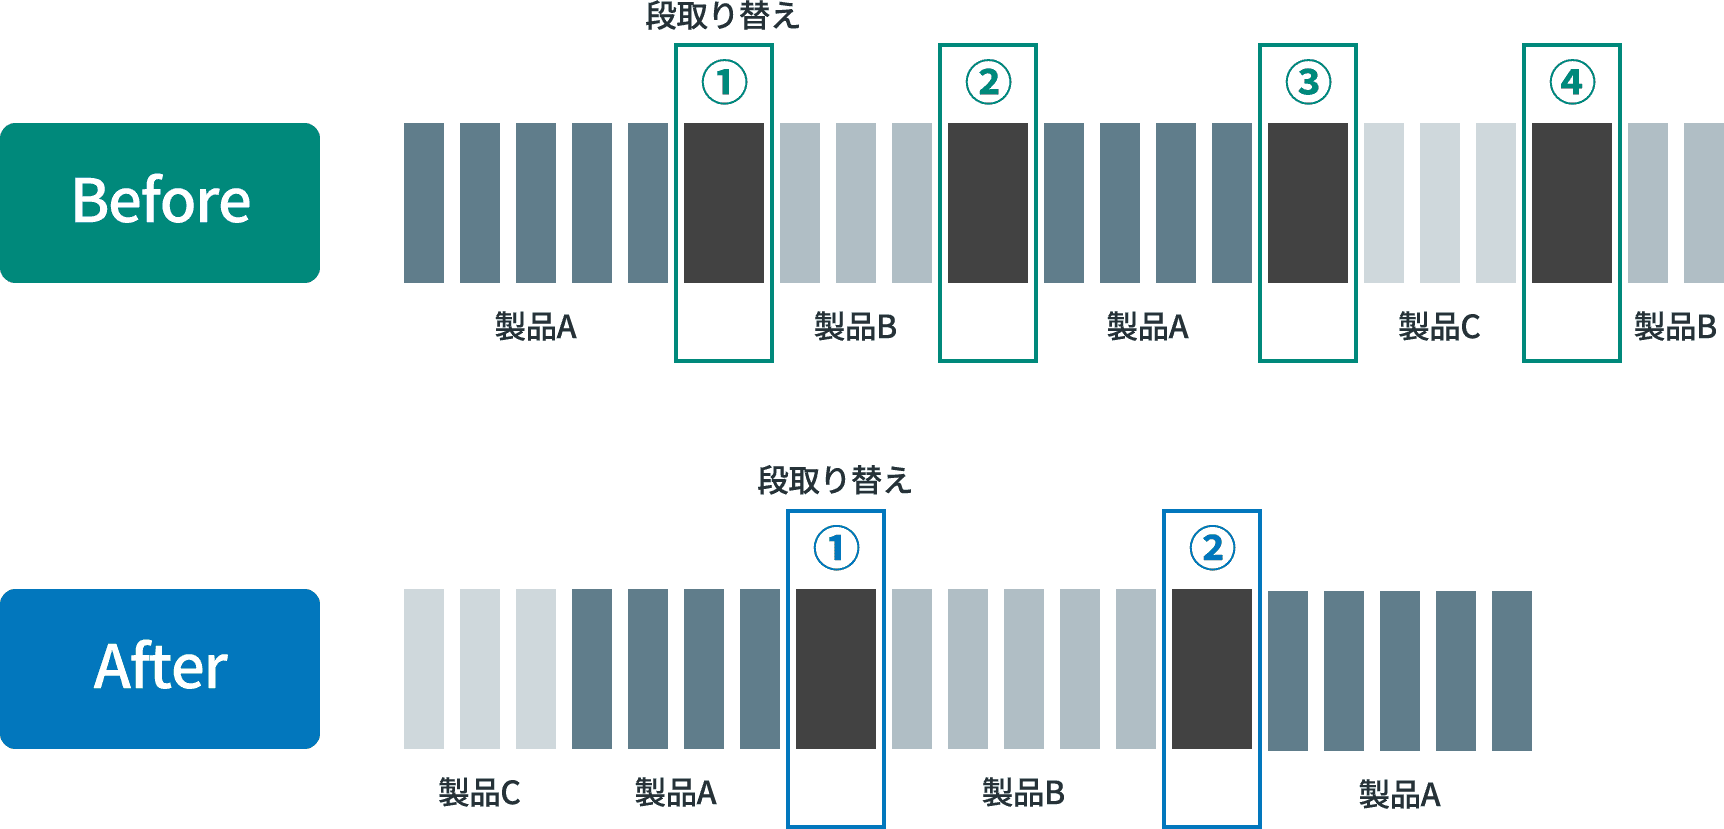 [Before / After]段取り替え回数を最小化